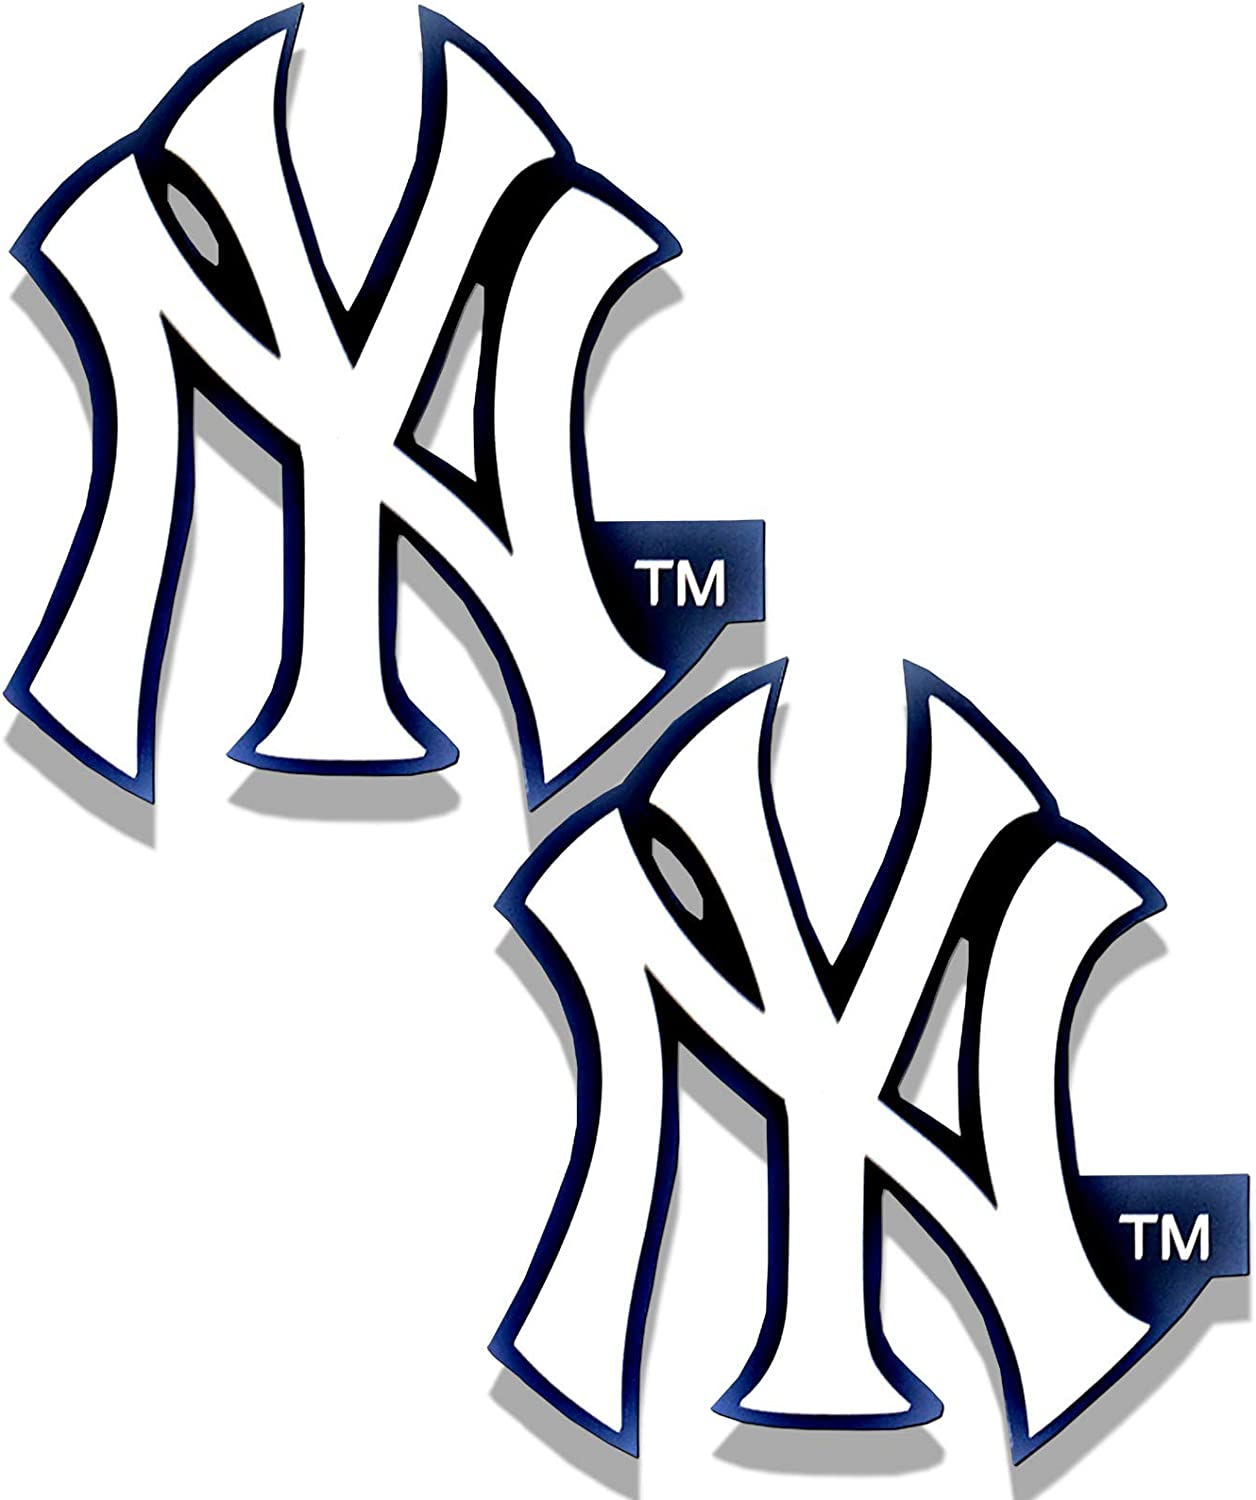 A&A Global 2 Pack Team Choice MLB Licensed Stickers | Team Logo Sticker for Art and Crafts | Wall, Laptop, Cellphone Decoration | Card Dimensions are Approximately 4.25 inches x 2 75 inches